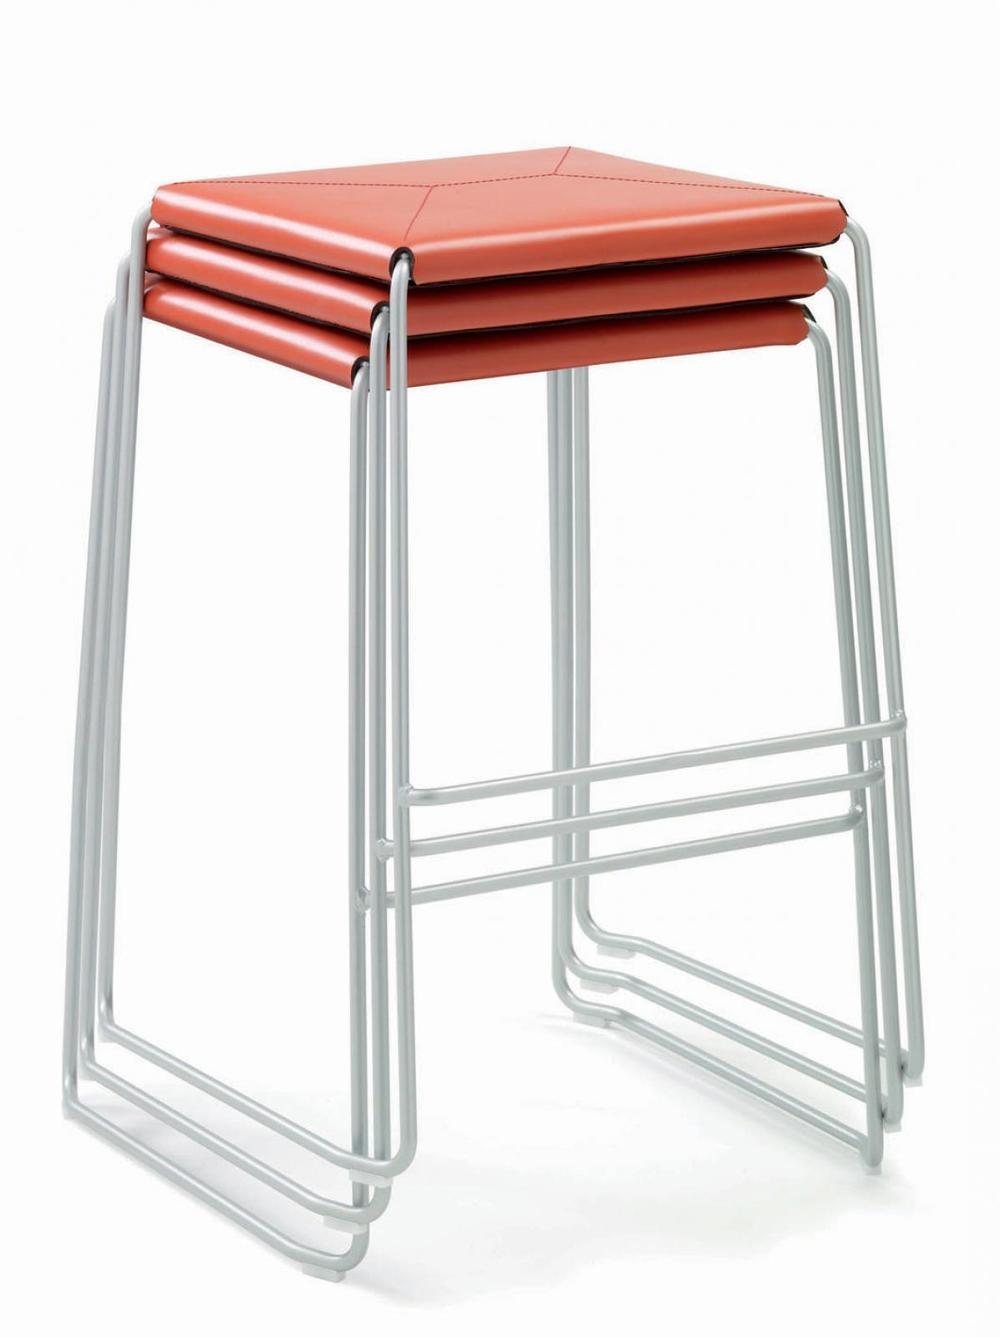 modern-bar-stools-italian-furniture-1.jpg